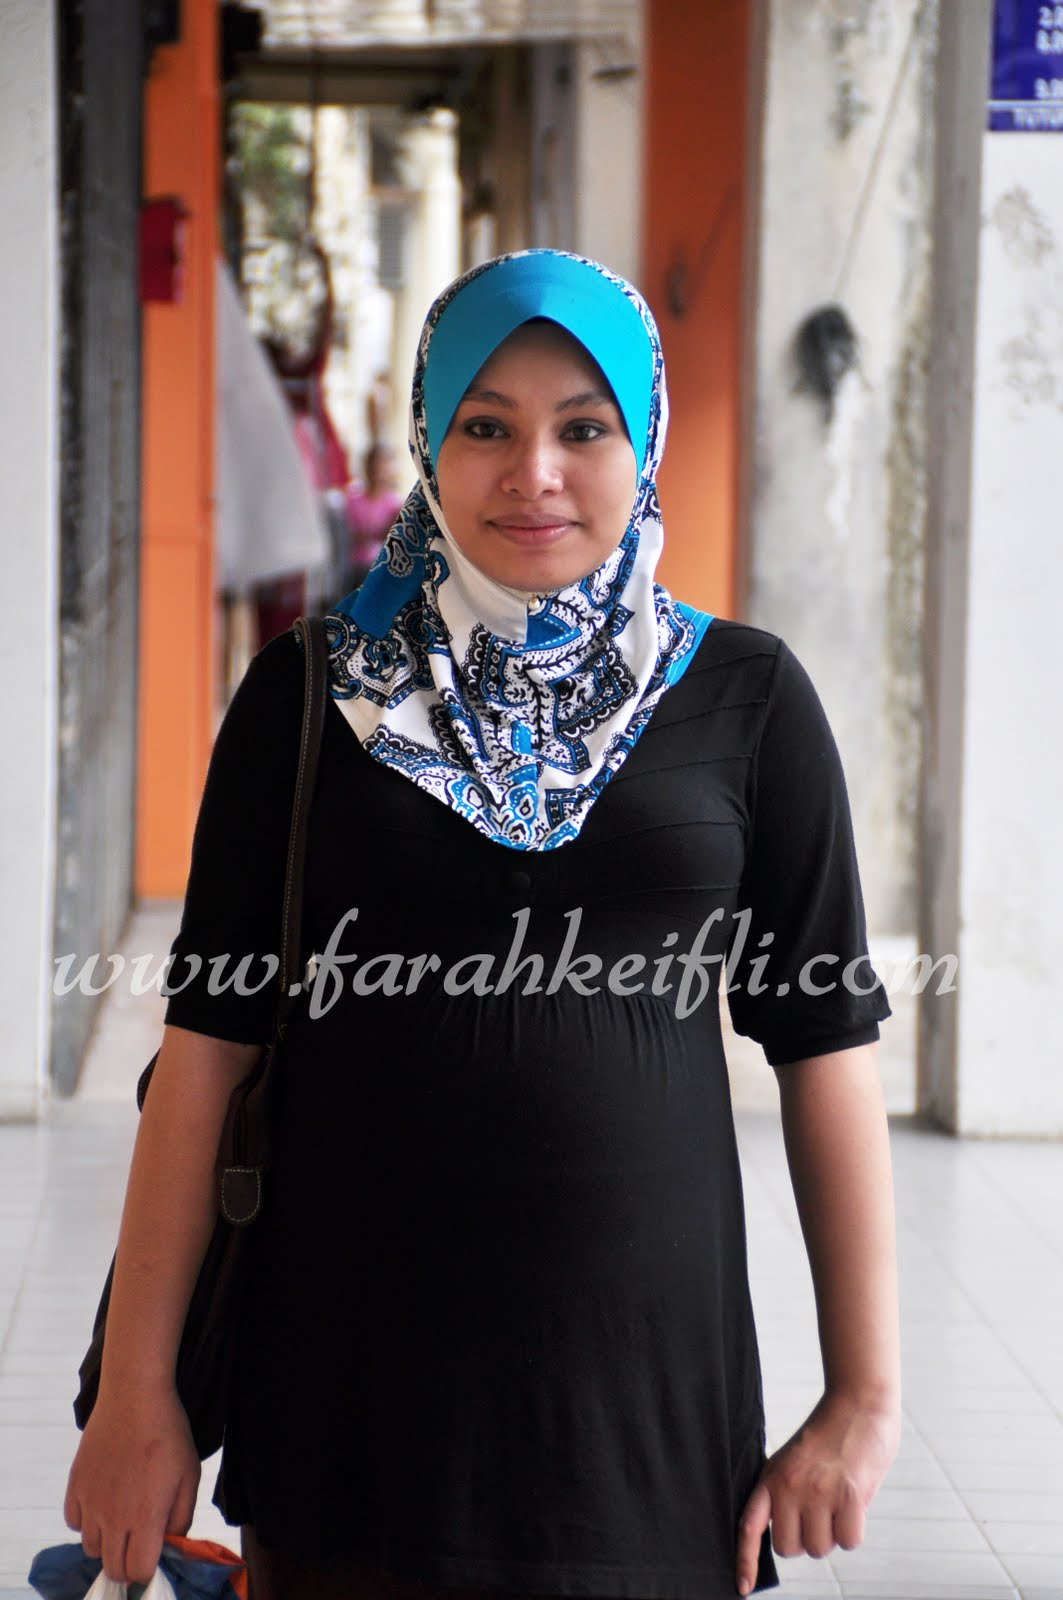 tudung jpg download 15 tudung jpg download 16 tudung jpg download 17